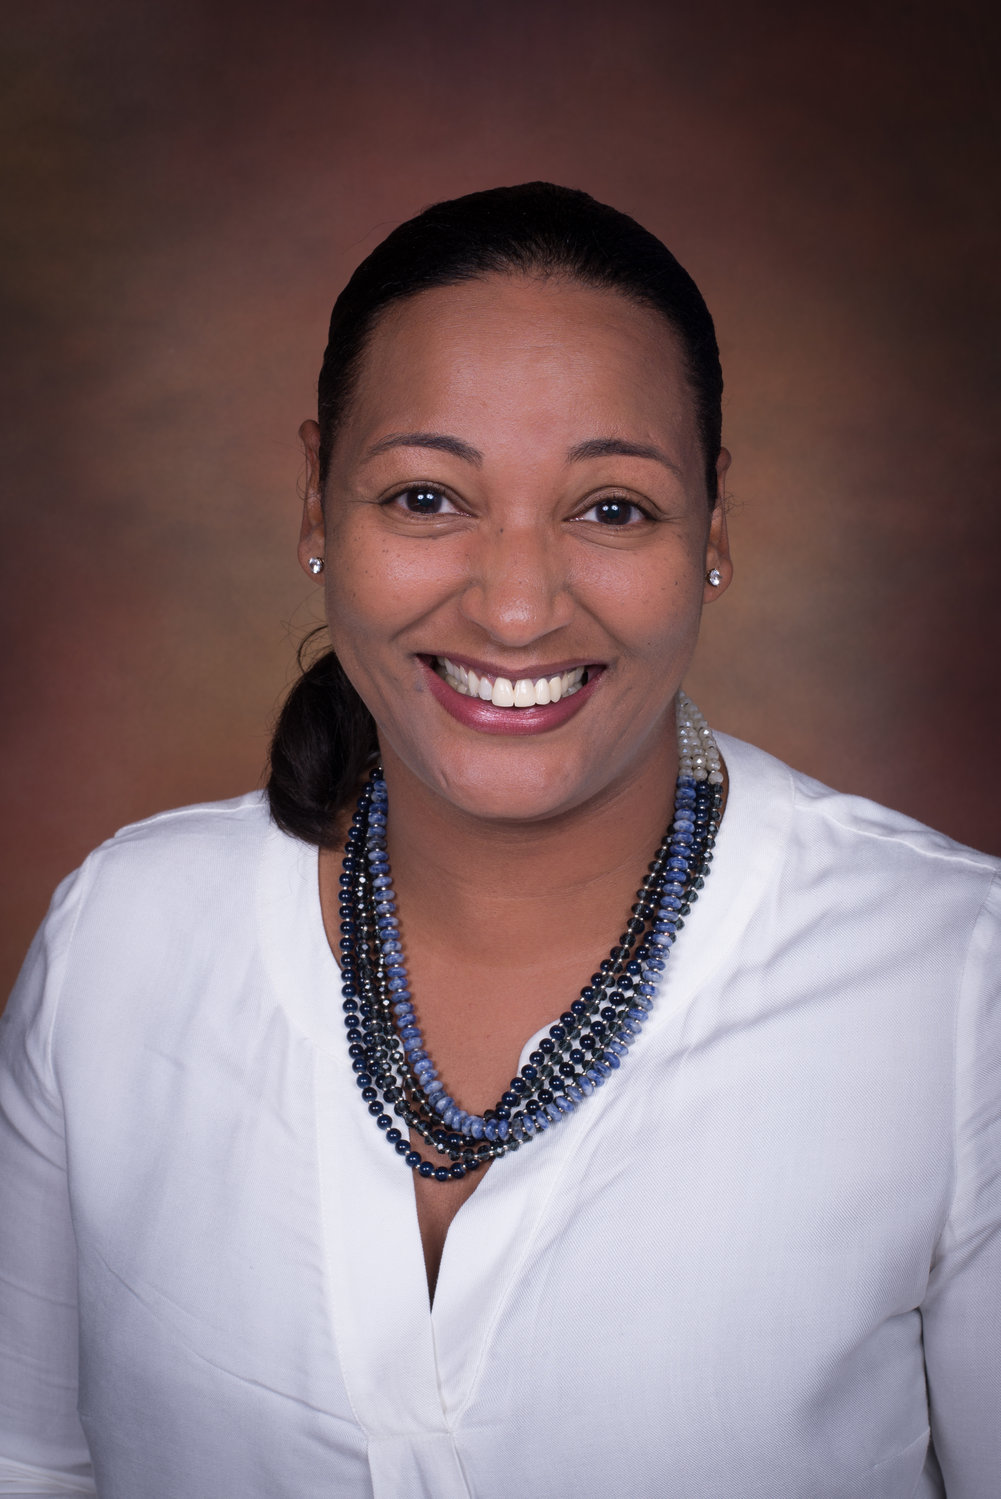 Tiffany Capers is running for the seat vacated by Karen Taylor Bass.